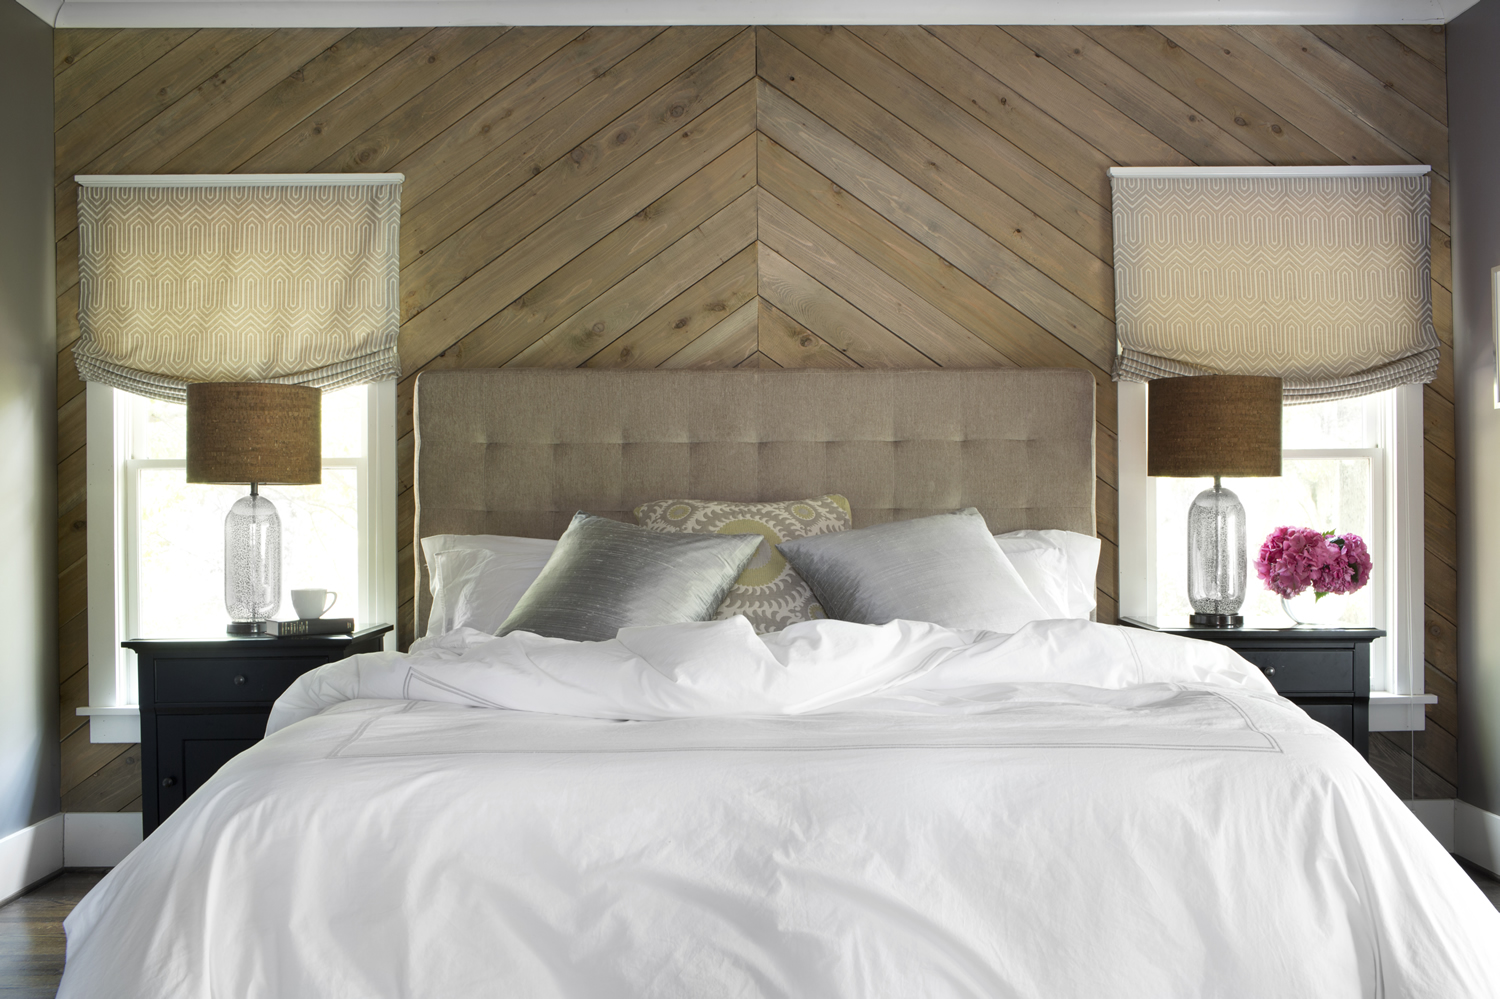 Wood Feature Wall Tips Jlc Online